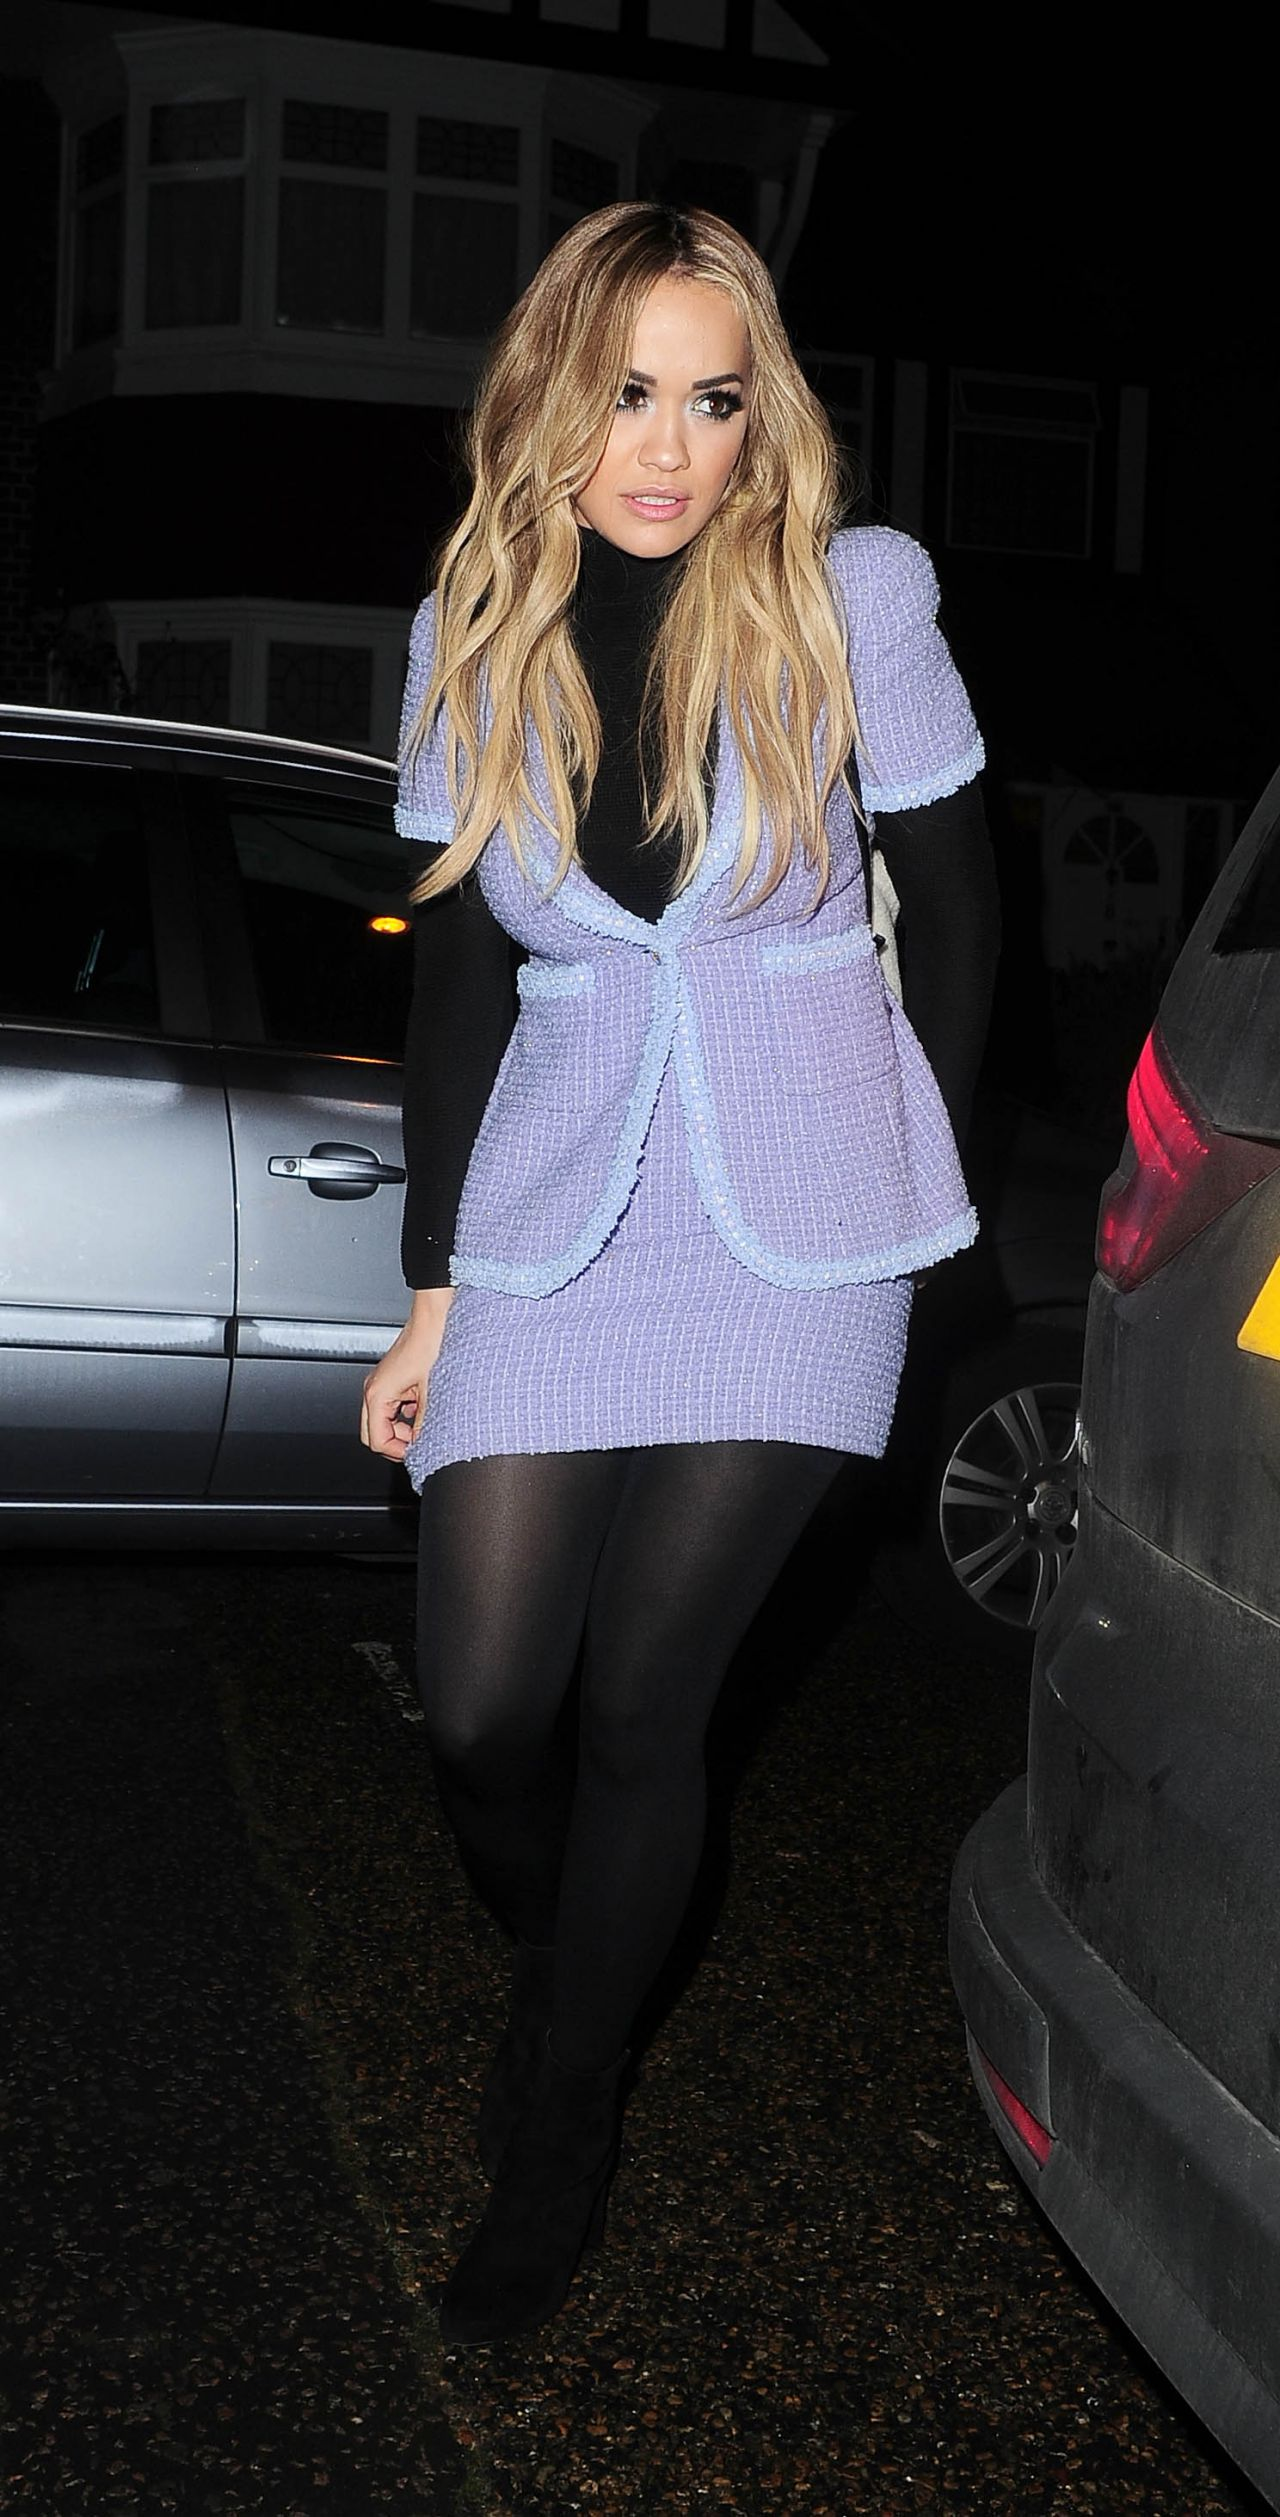 rita-ora-style-out-in-london-12-13-2015-_5-1